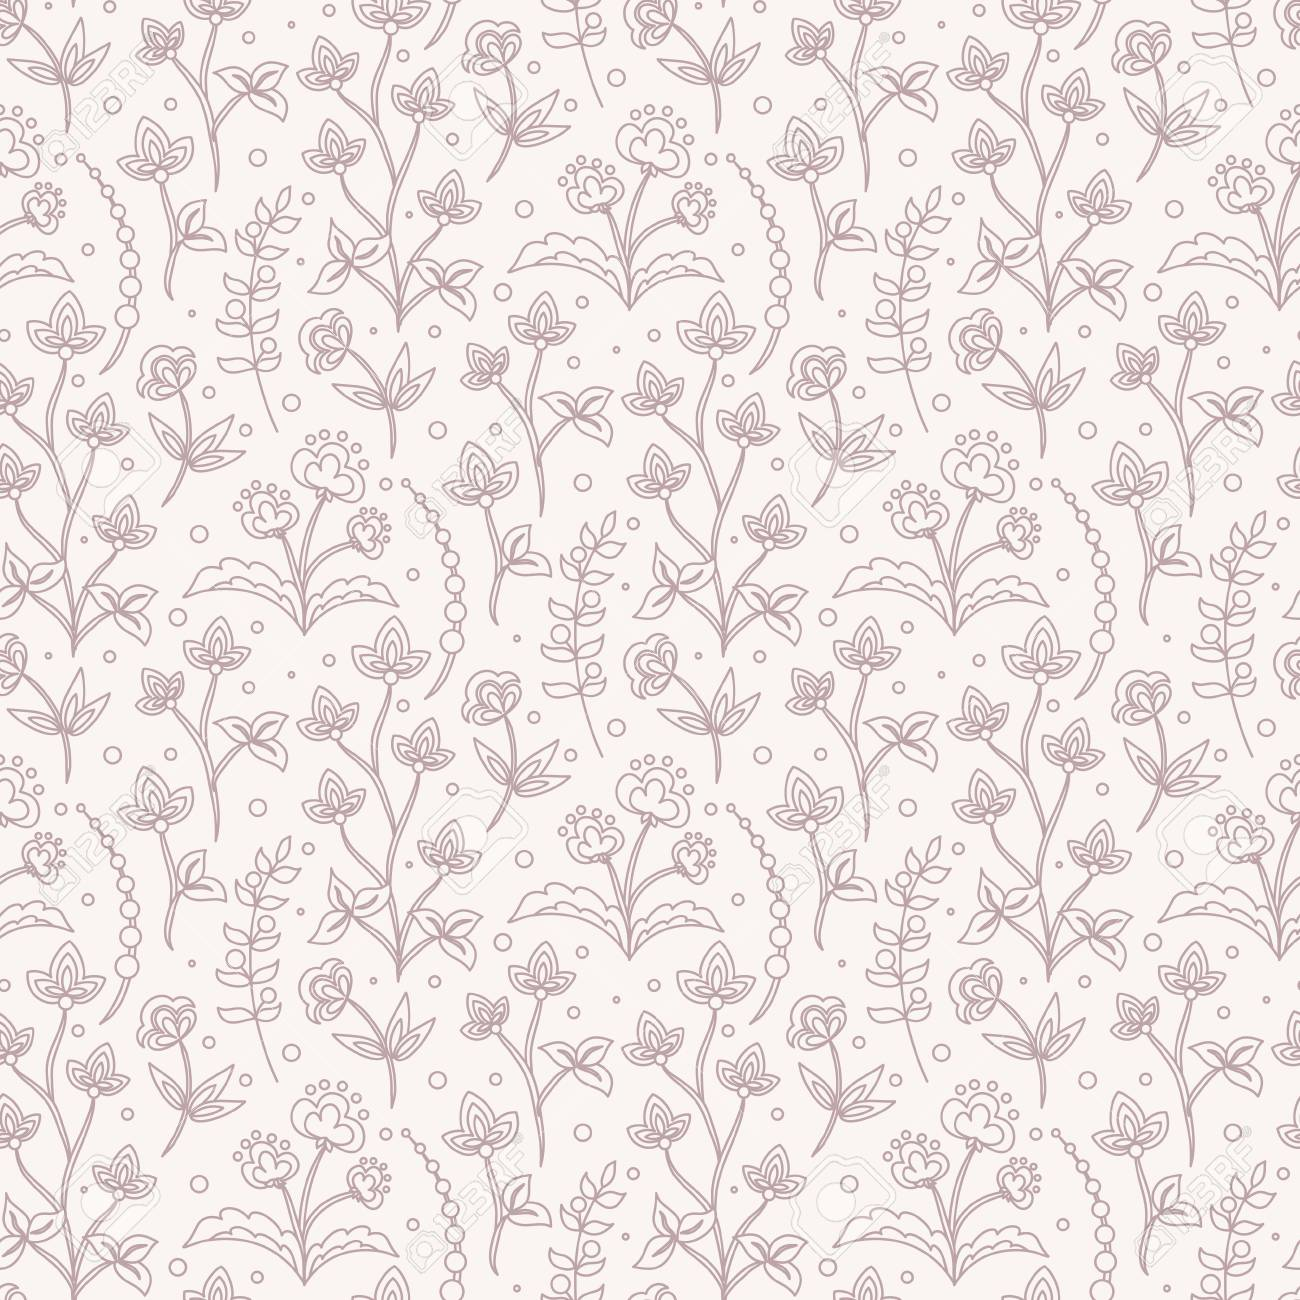 Jacobean Floral Illustration Meadow Flowers Background Two 1300x1300